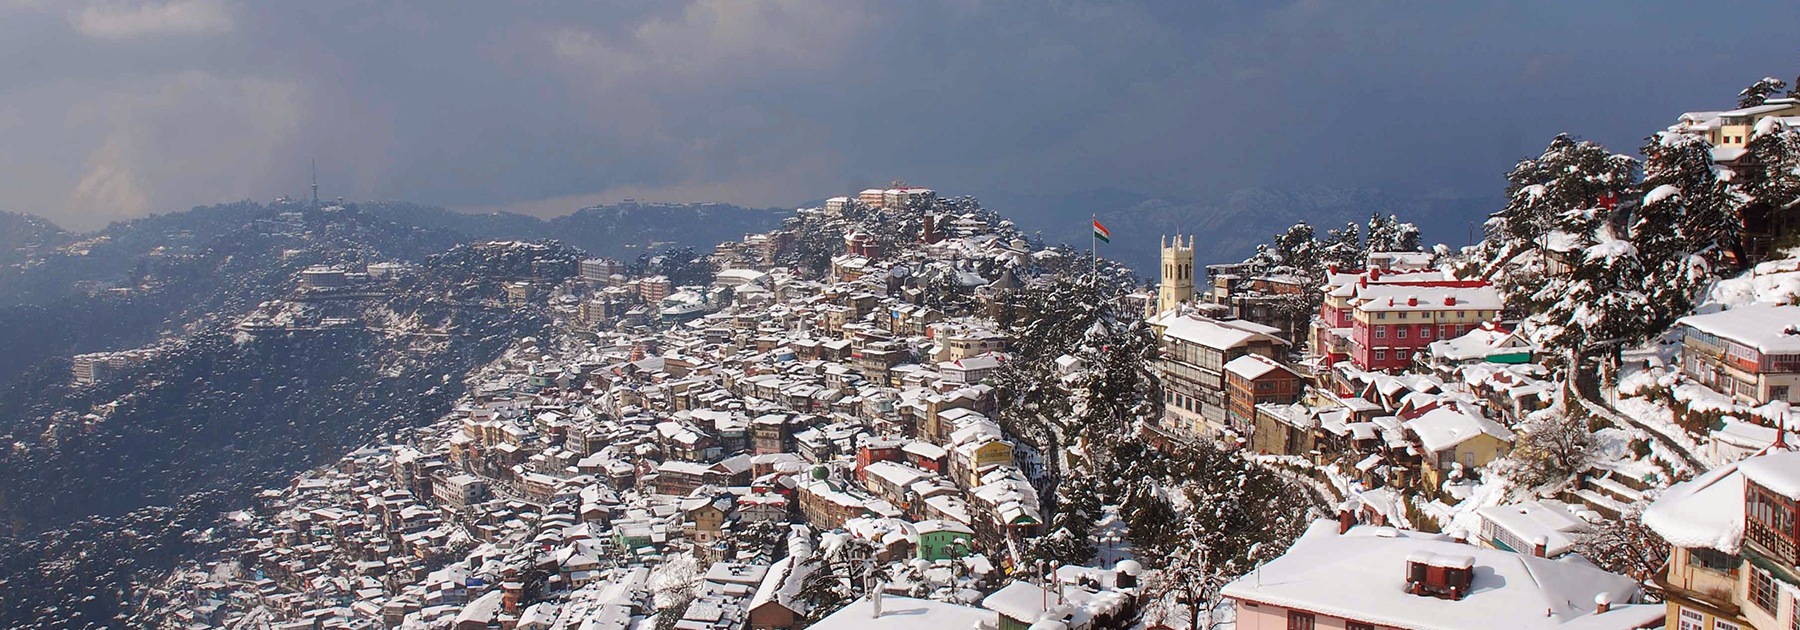 Snow lies on rooftops in Shimla, after heavy winter showers. (STR/AFP/Getty Images)